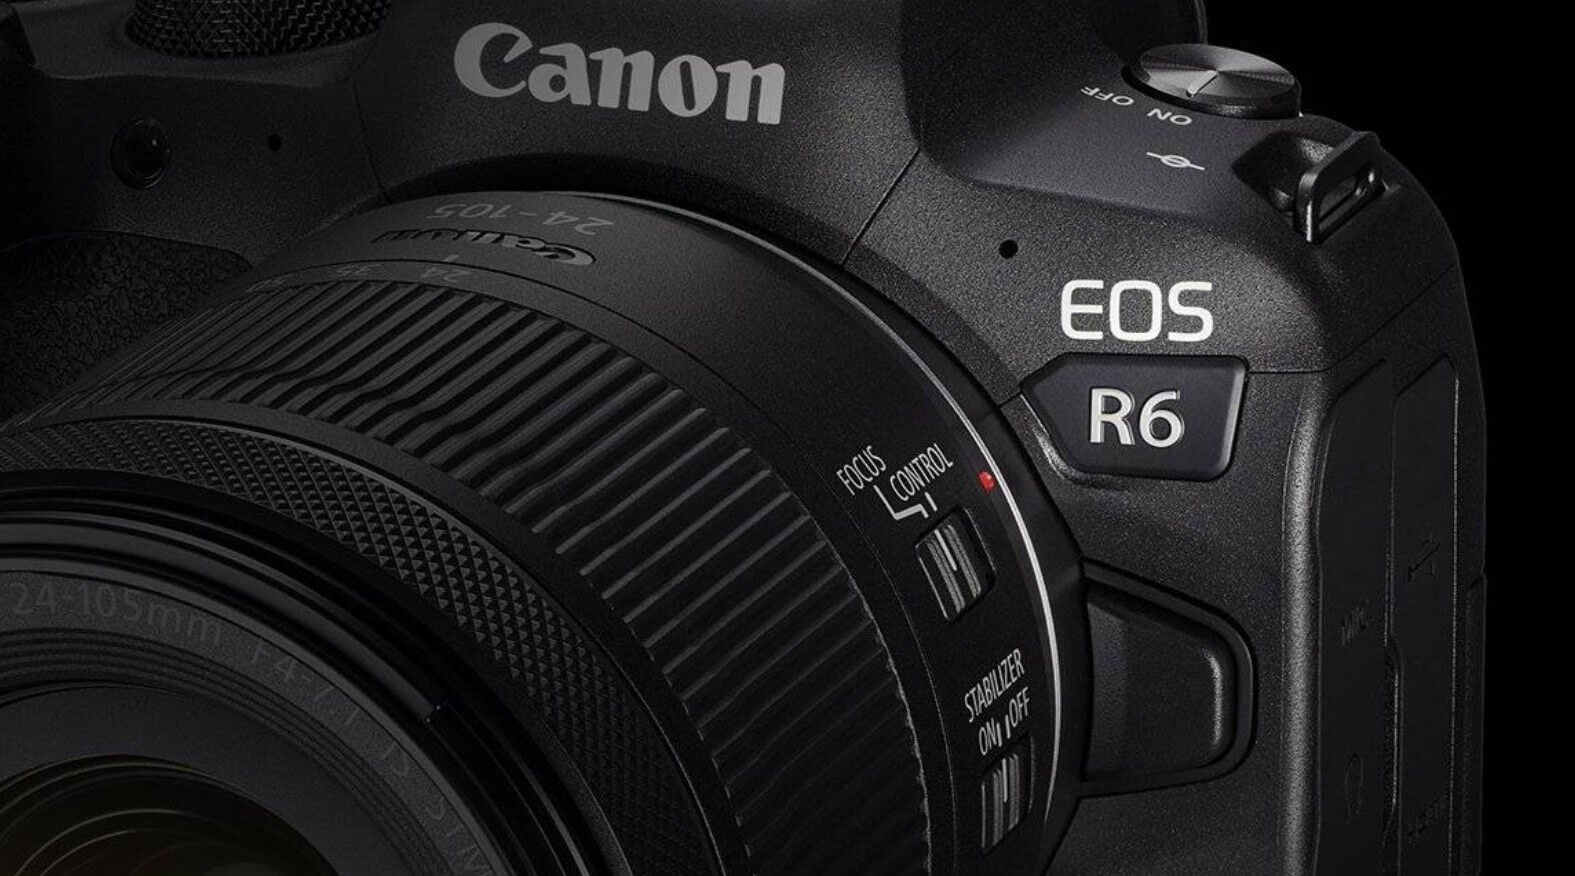 Canon reportedly hit with ransomware attack